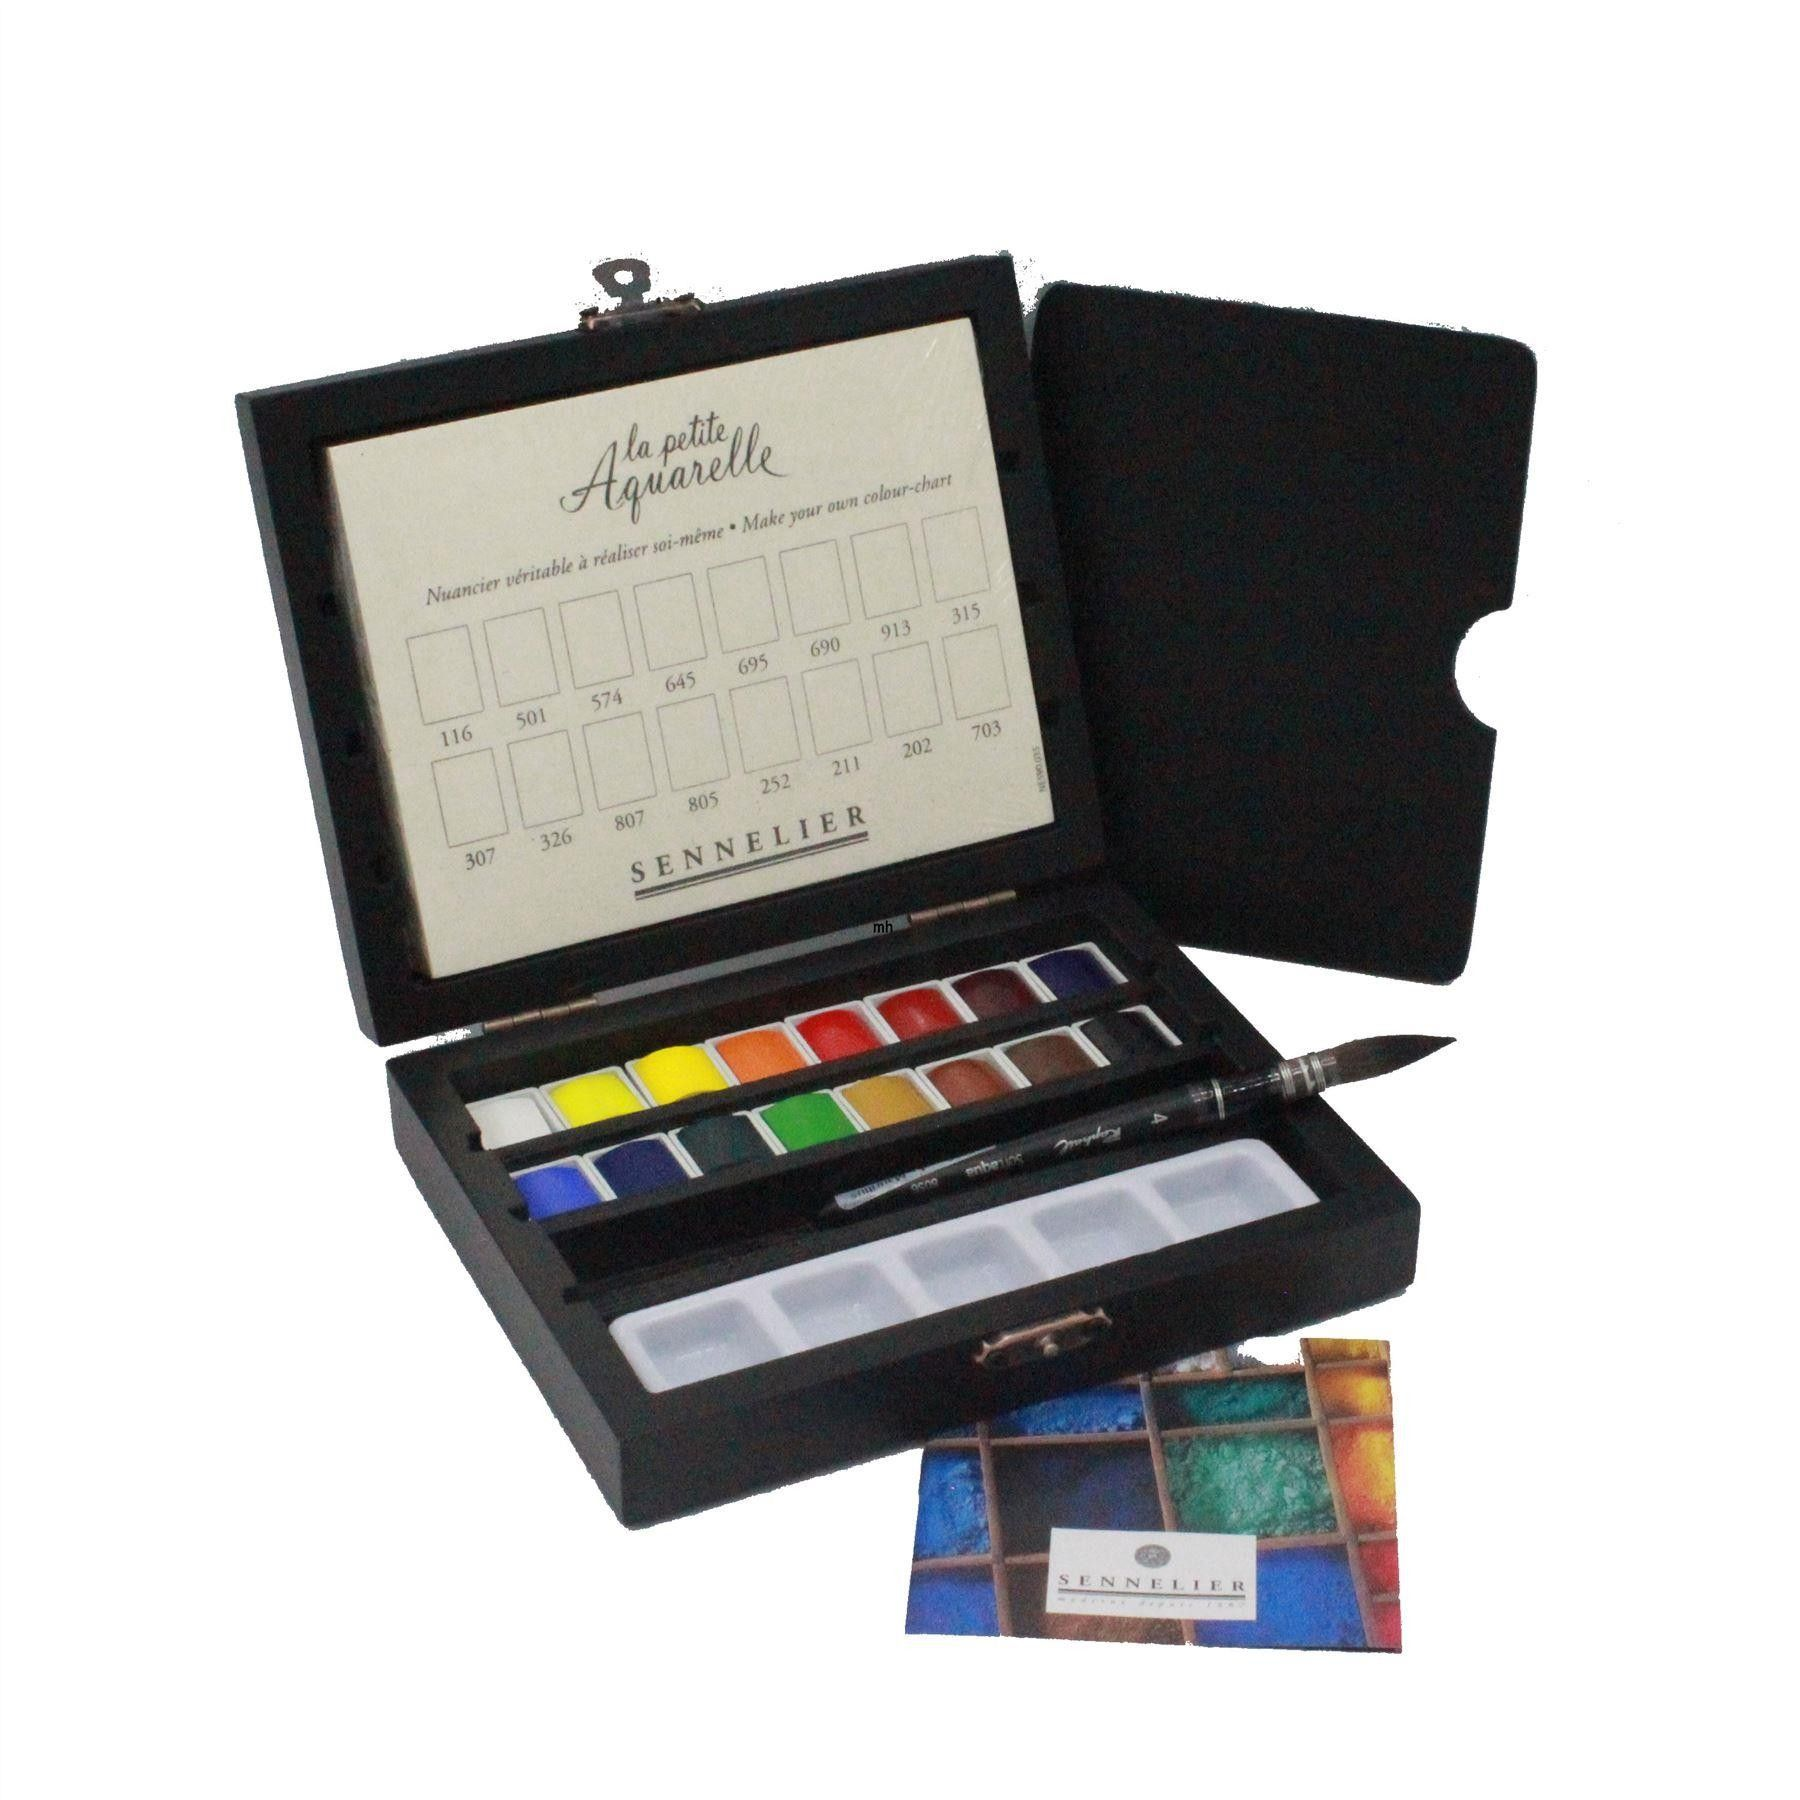 Sennelier La Petite Aquarelle Watercolour Paint Black Wood Box 1 2